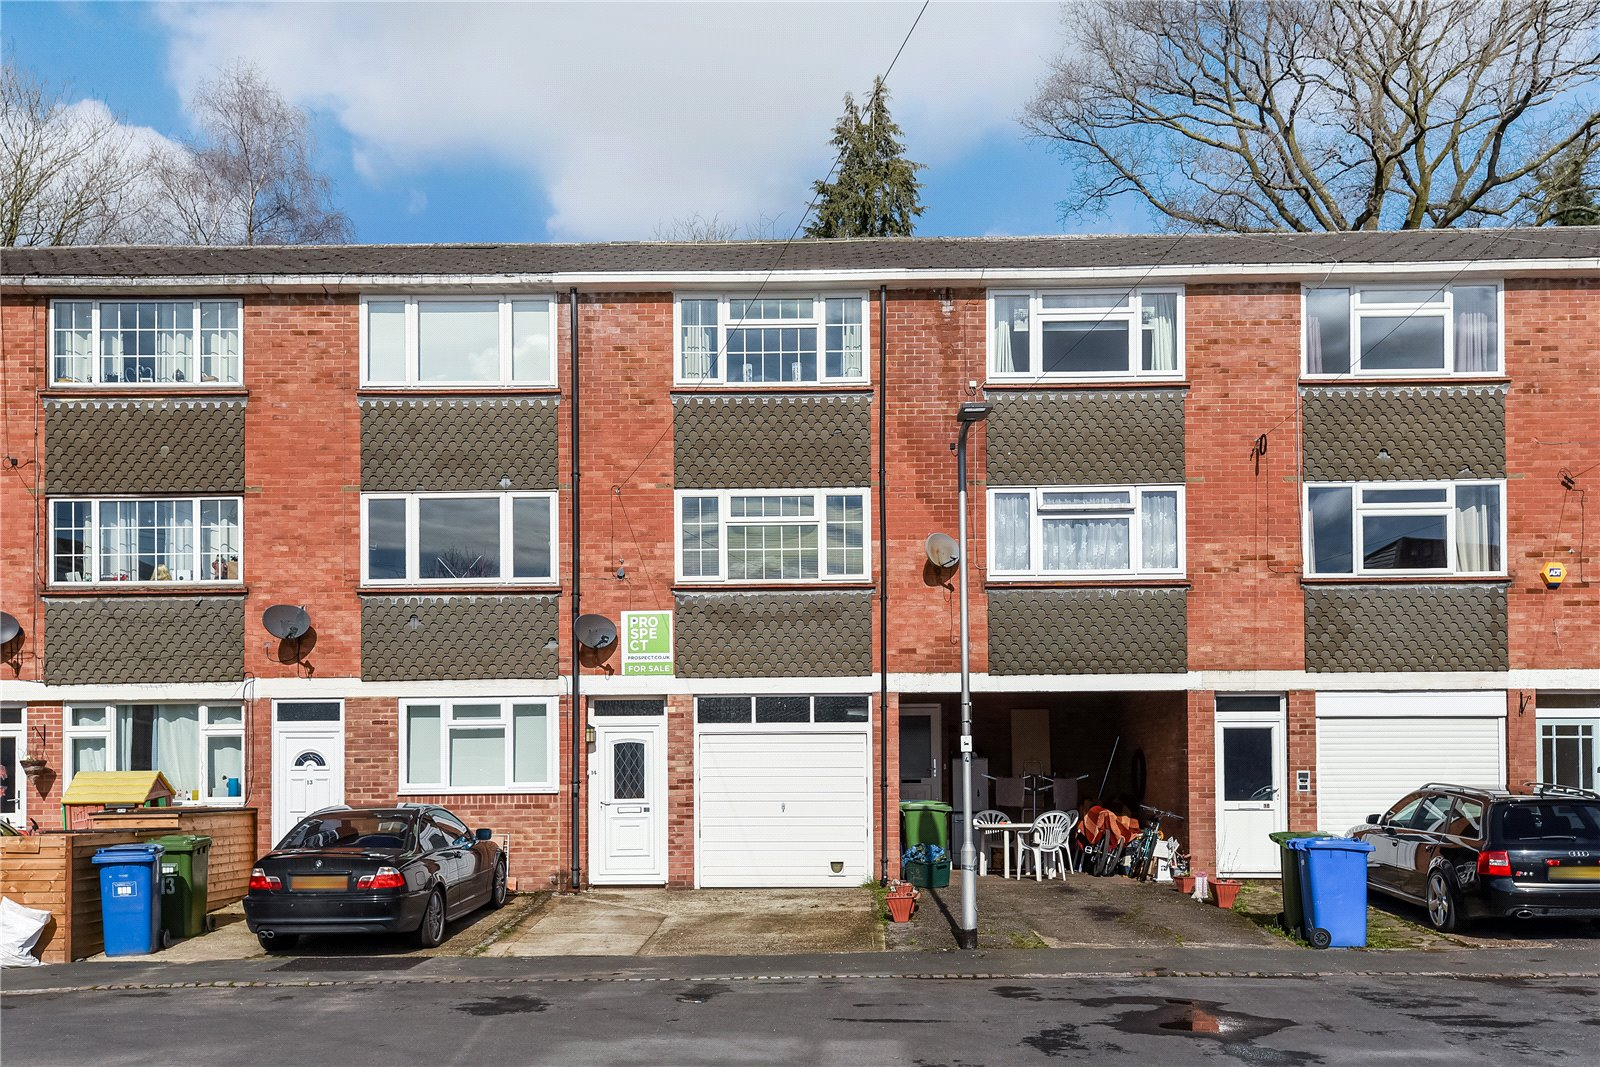 3 Bedrooms Terraced House for sale in Warren Close, Sandhurst, Berkshire, GU47